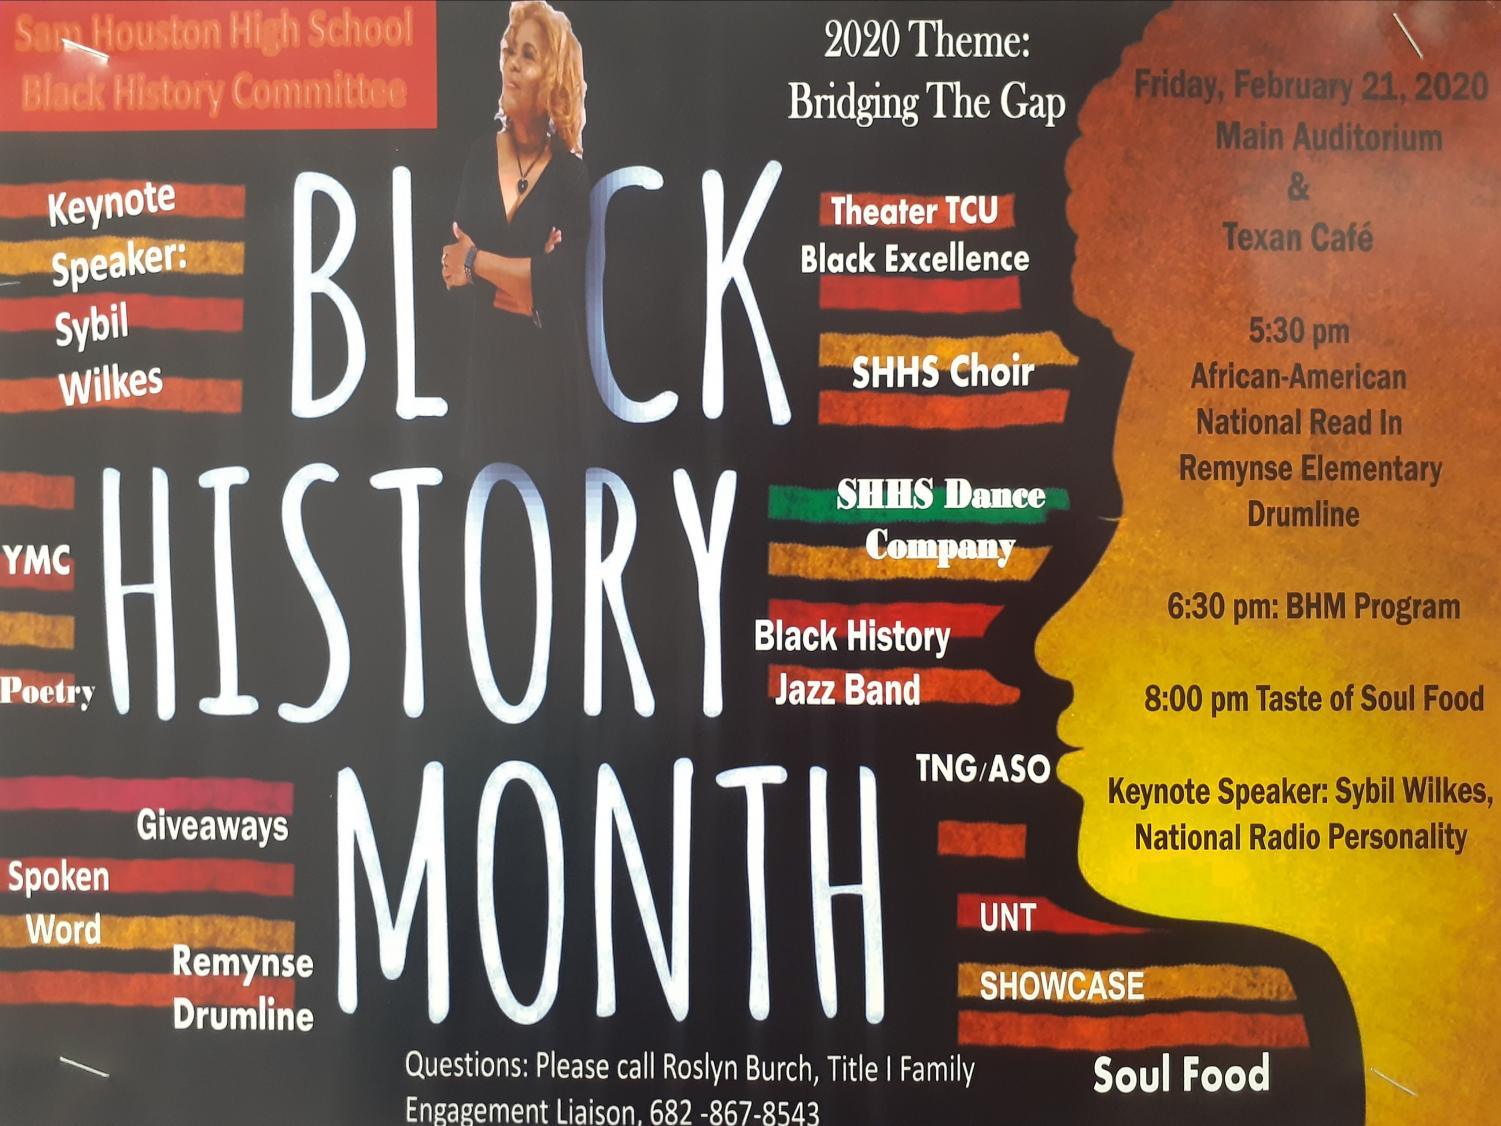 """This year's Black History Month program theme is Eracism """"Bridging the Gap."""" The evening program will occur at 6:30 p.m. Feb. 21 in the Auditorium and will feature students, staff, and community participants performing a showcase to promote cultural awareness. Admission is free and there will be dinner provided after the program."""